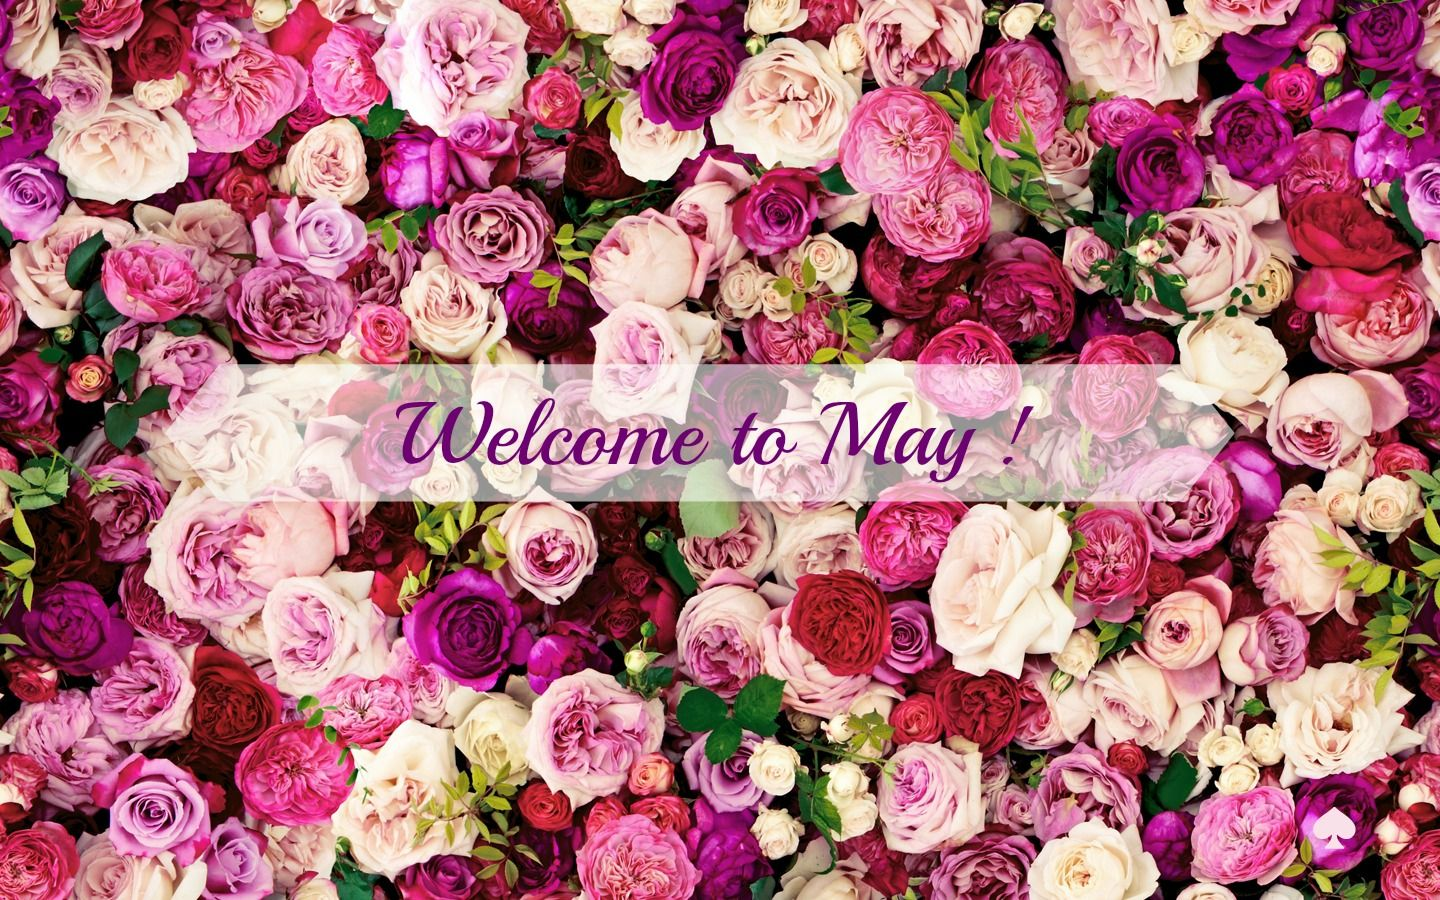 welcome may.jpg